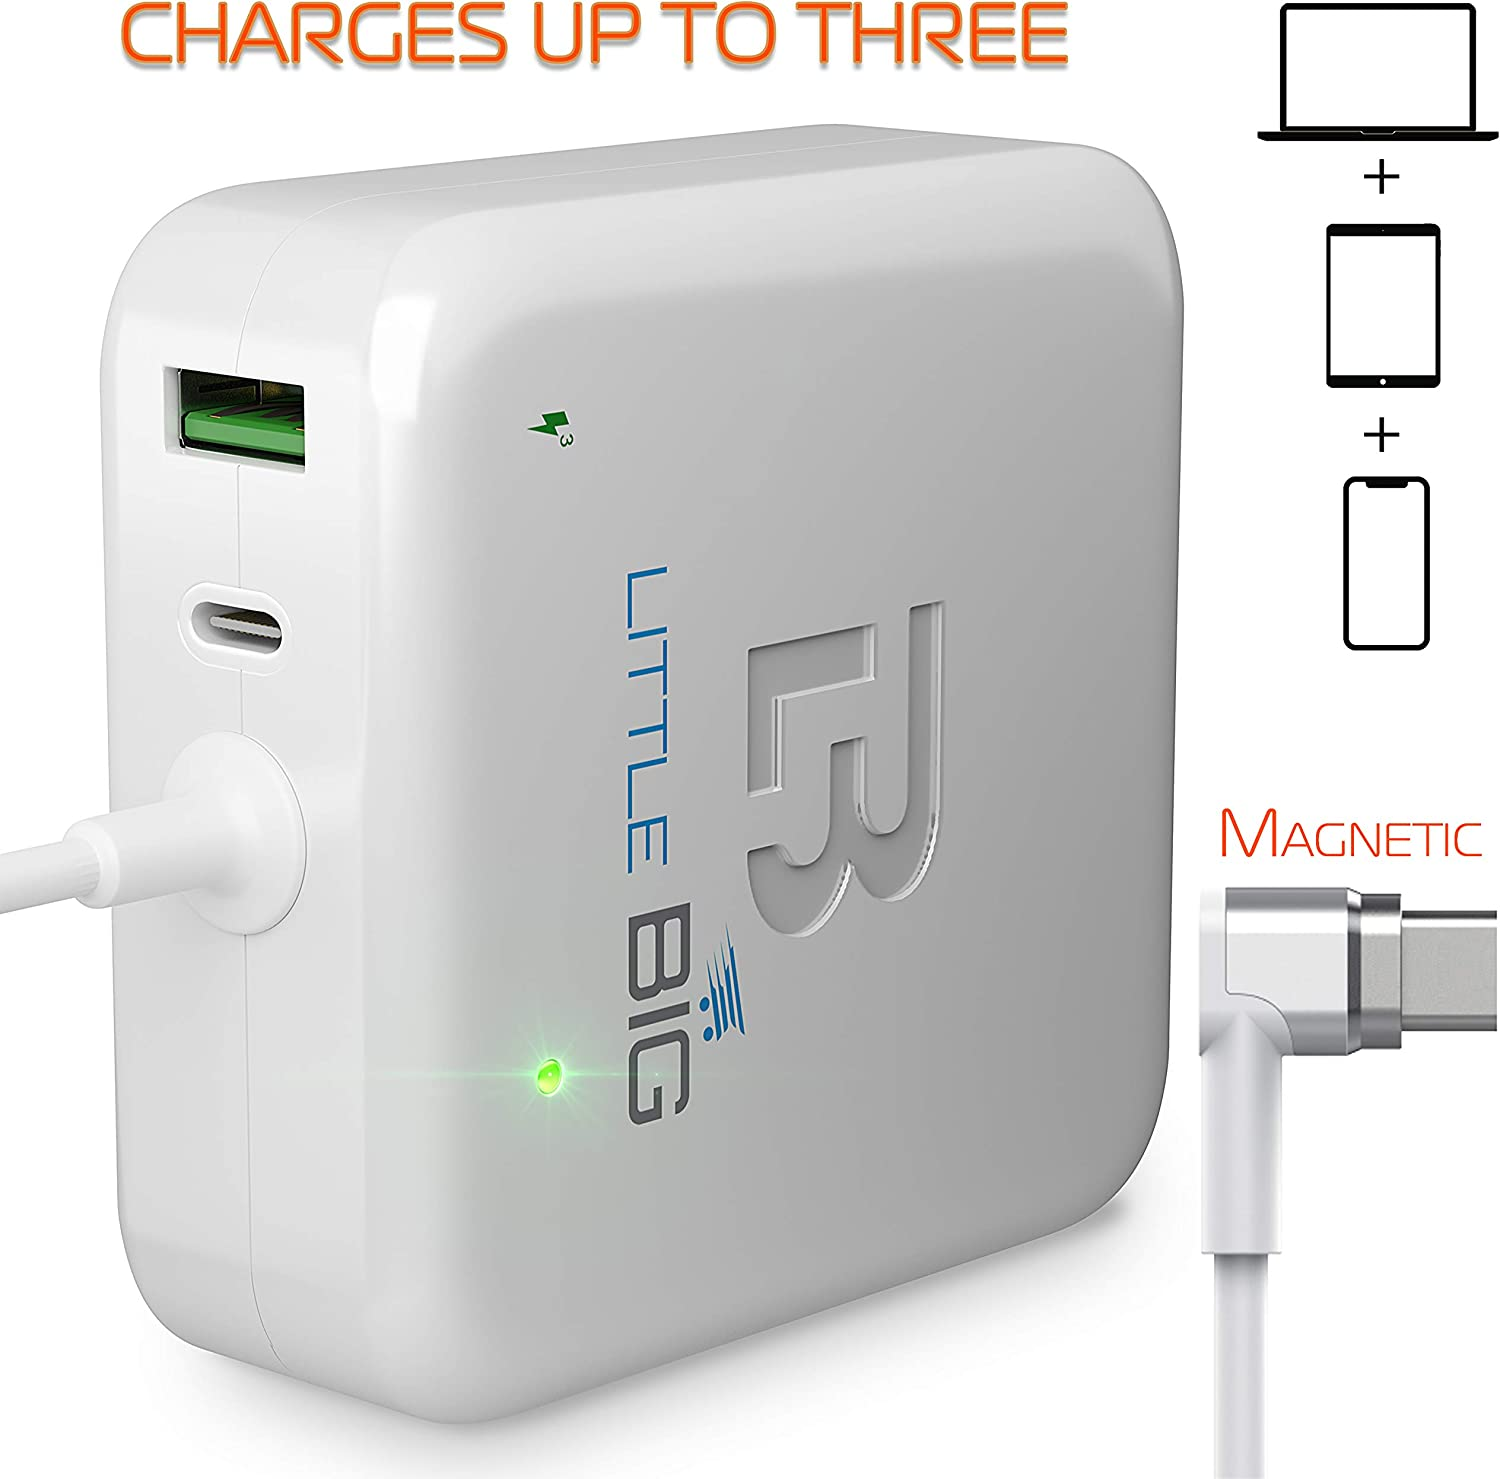 MacBook Pro Charger 61W USB C - Laptop PD Type C Charger Compatible with Late 2016 and UP Apple MacBook Pro 11 inch & 13 inch | Charge Phone, Tablet, Mac from One Plug | Mac Charger Power Adapter